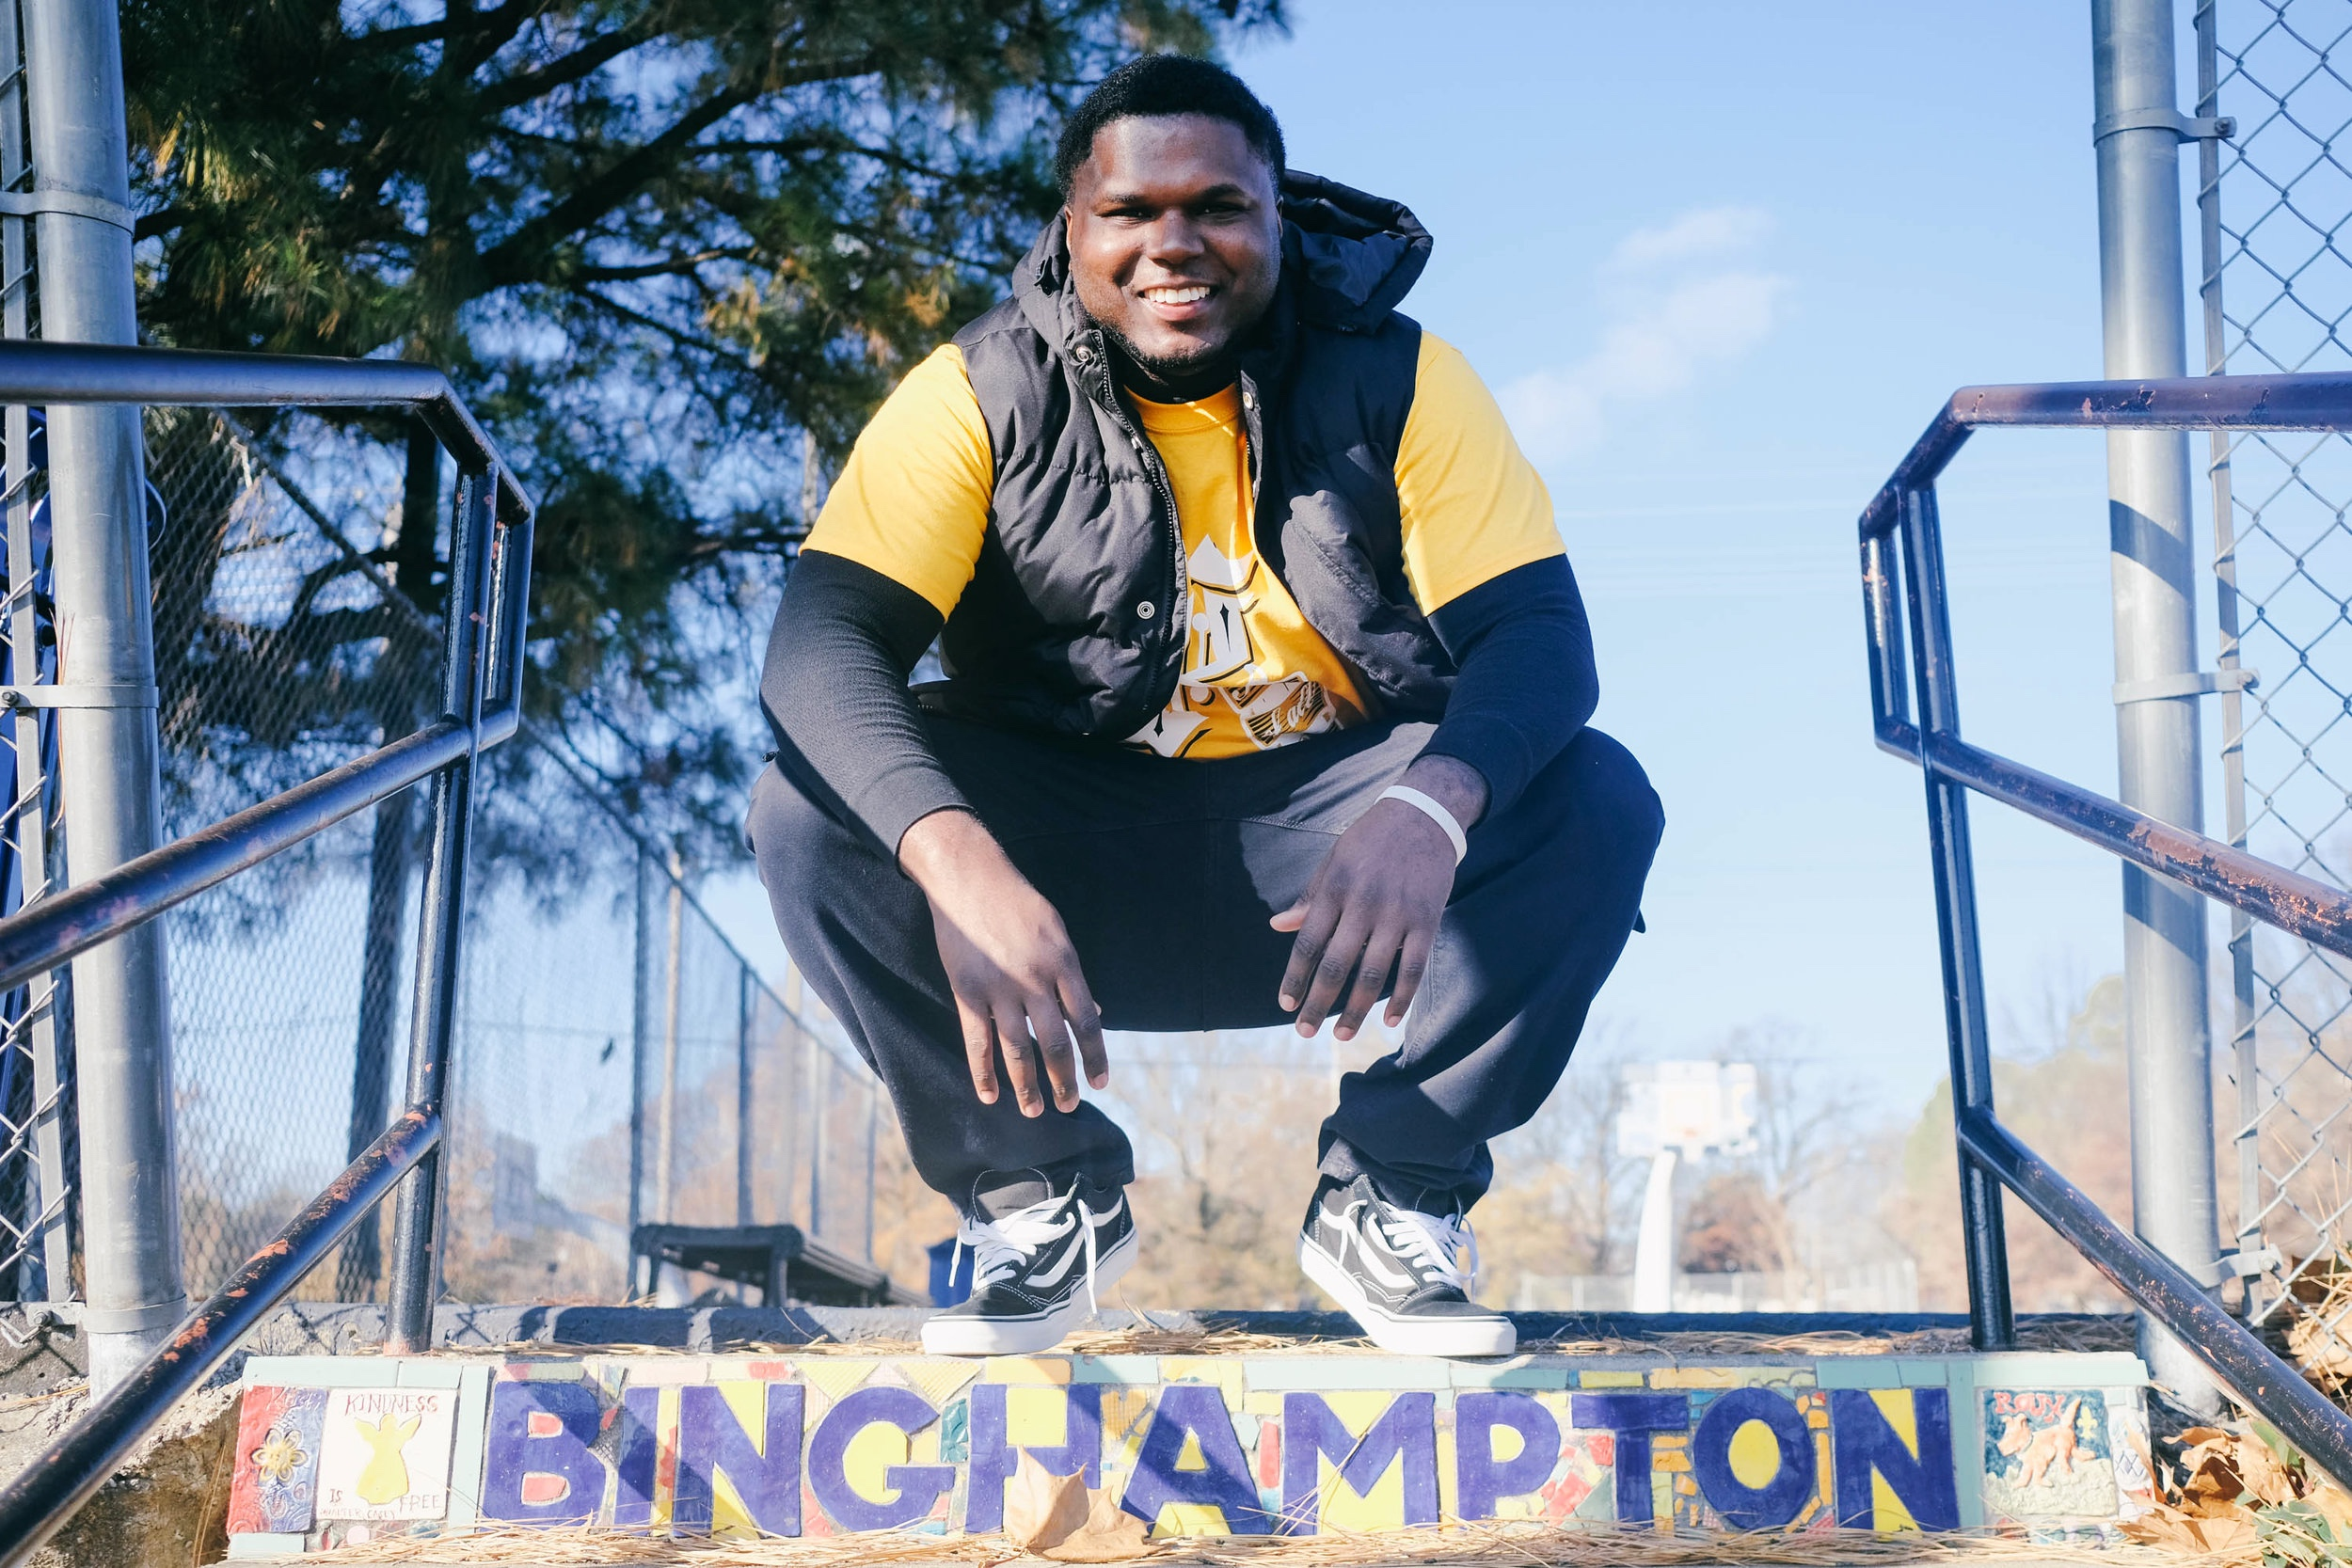 Fashion designer Zay Franklin, founder of Kencade Apparel, in Binghampton, January 8, 2018.